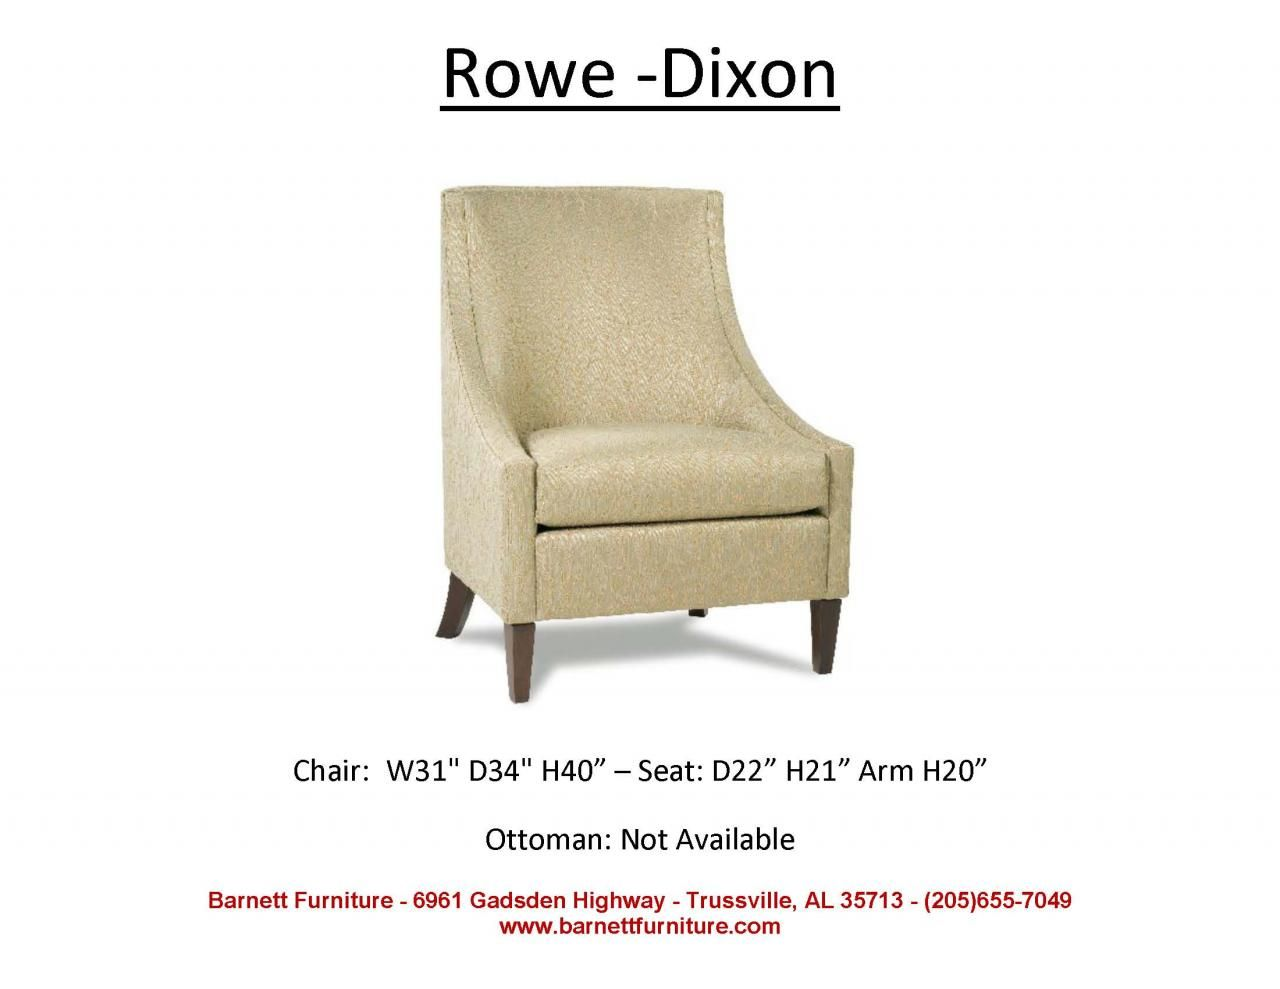 Swell Rowe Dixon Chair You Choose The Fabric Slipcovers For Lamtechconsult Wood Chair Design Ideas Lamtechconsultcom